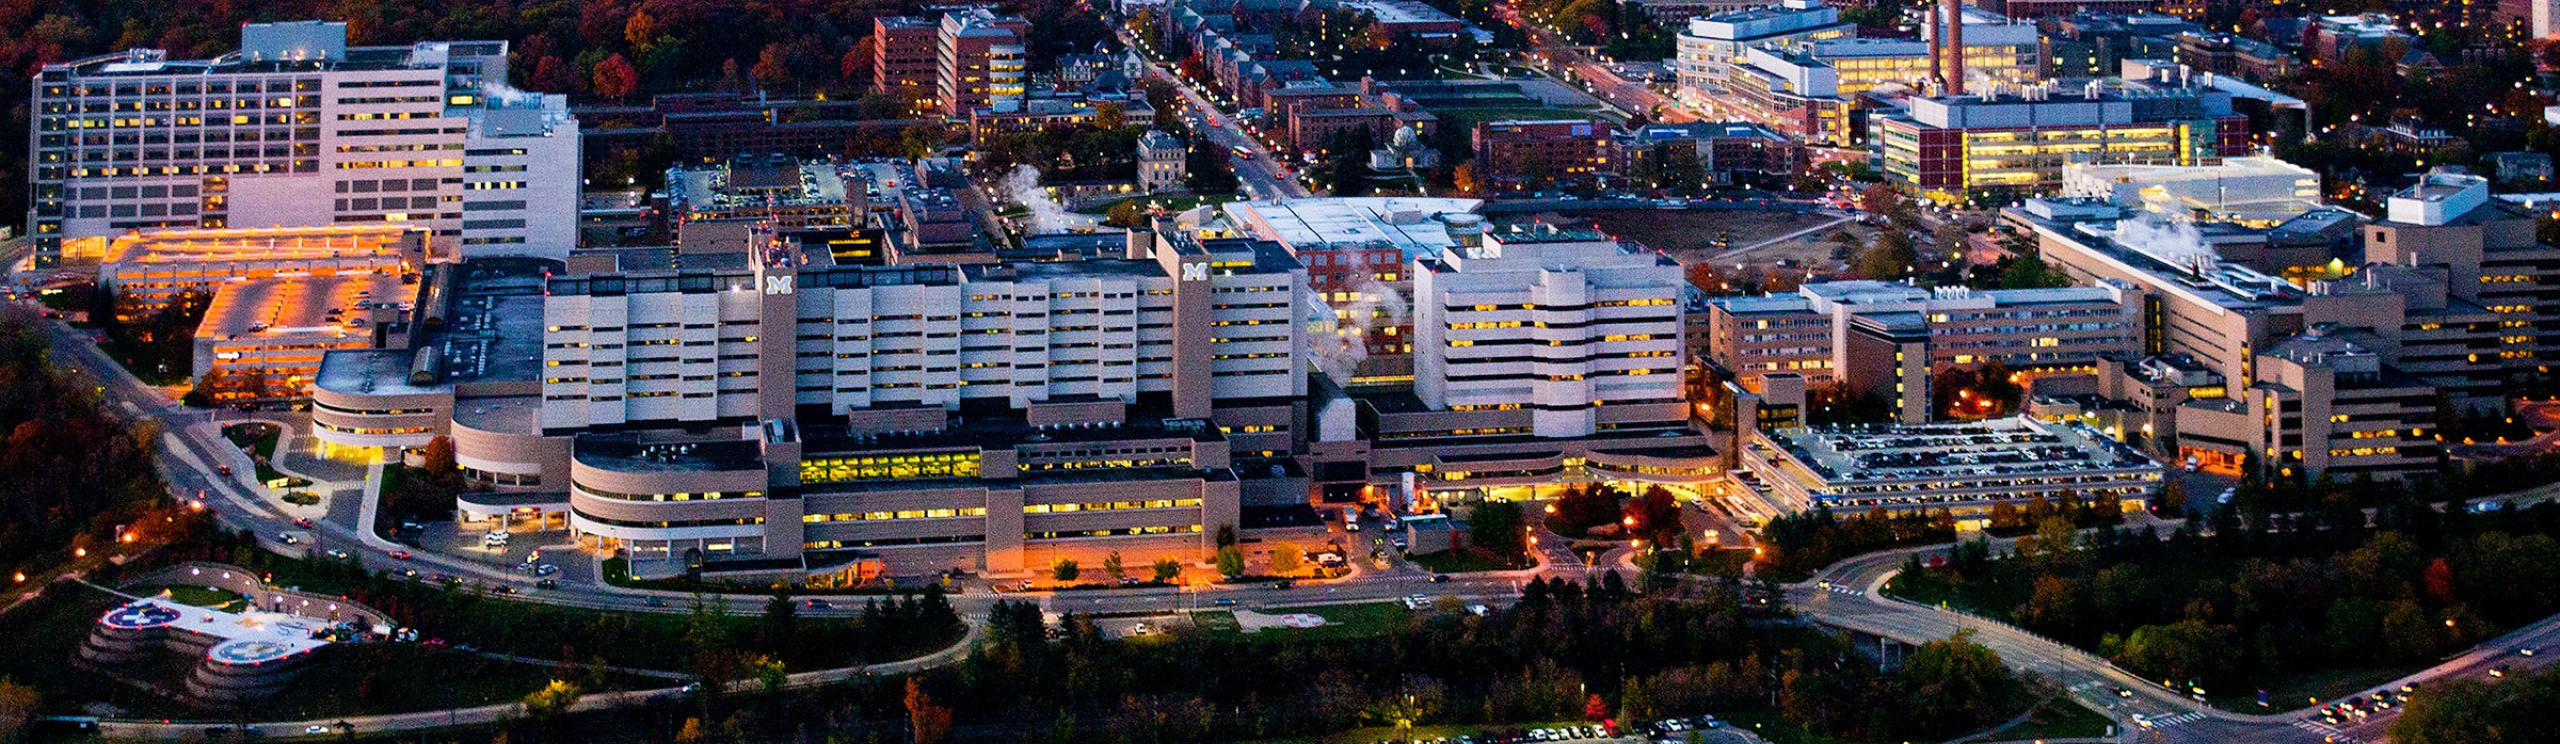 UM Hospital aerial shot at night